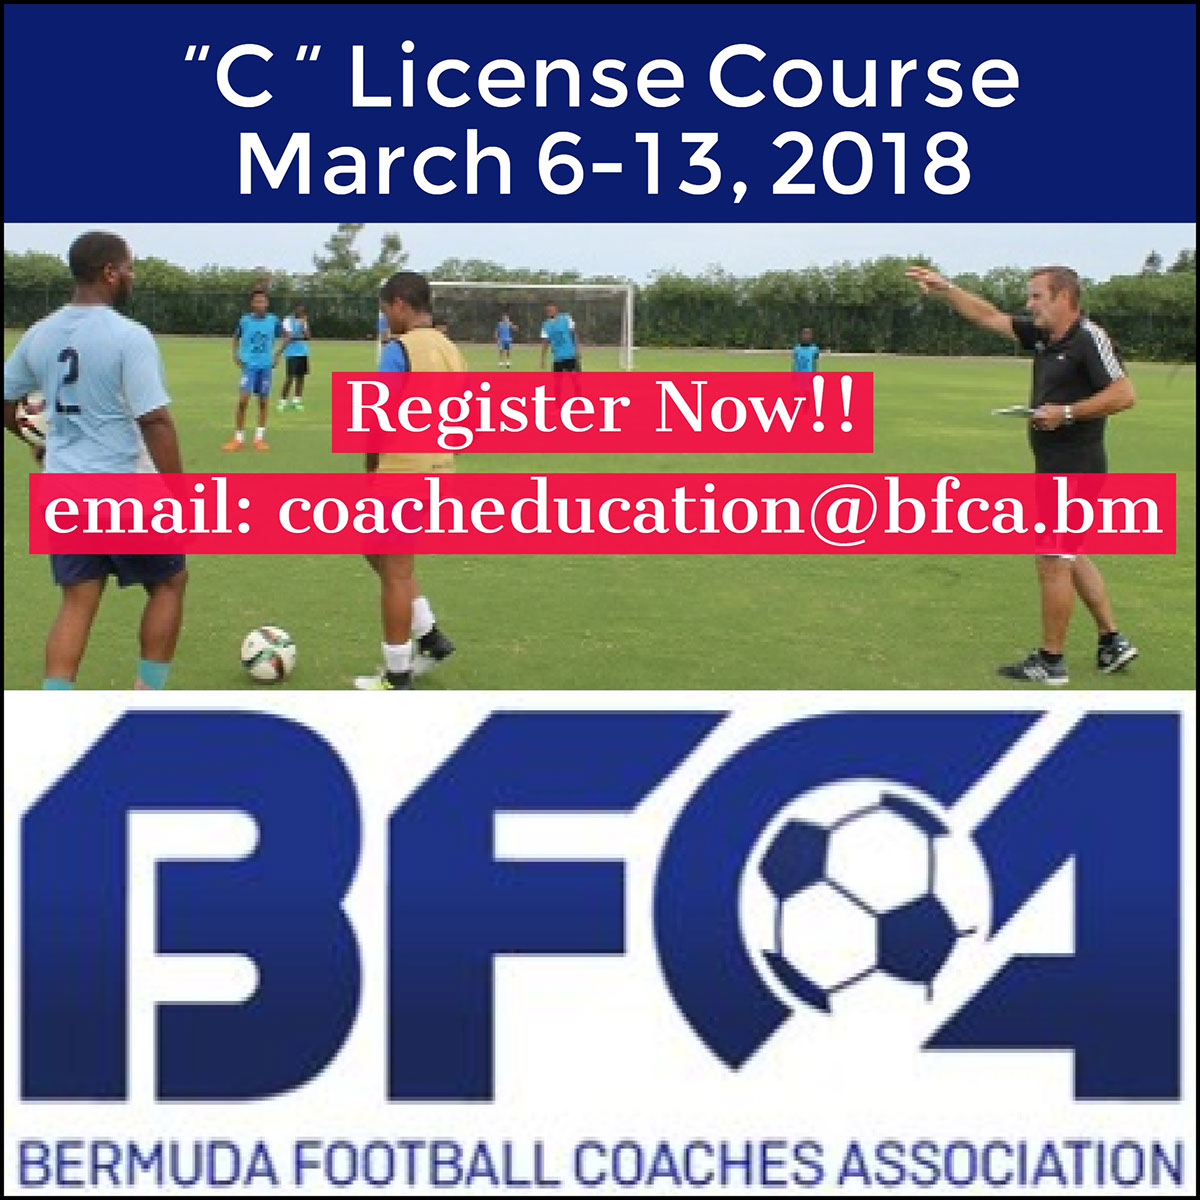 Register Now!! email: coacheducation@bfca.bm